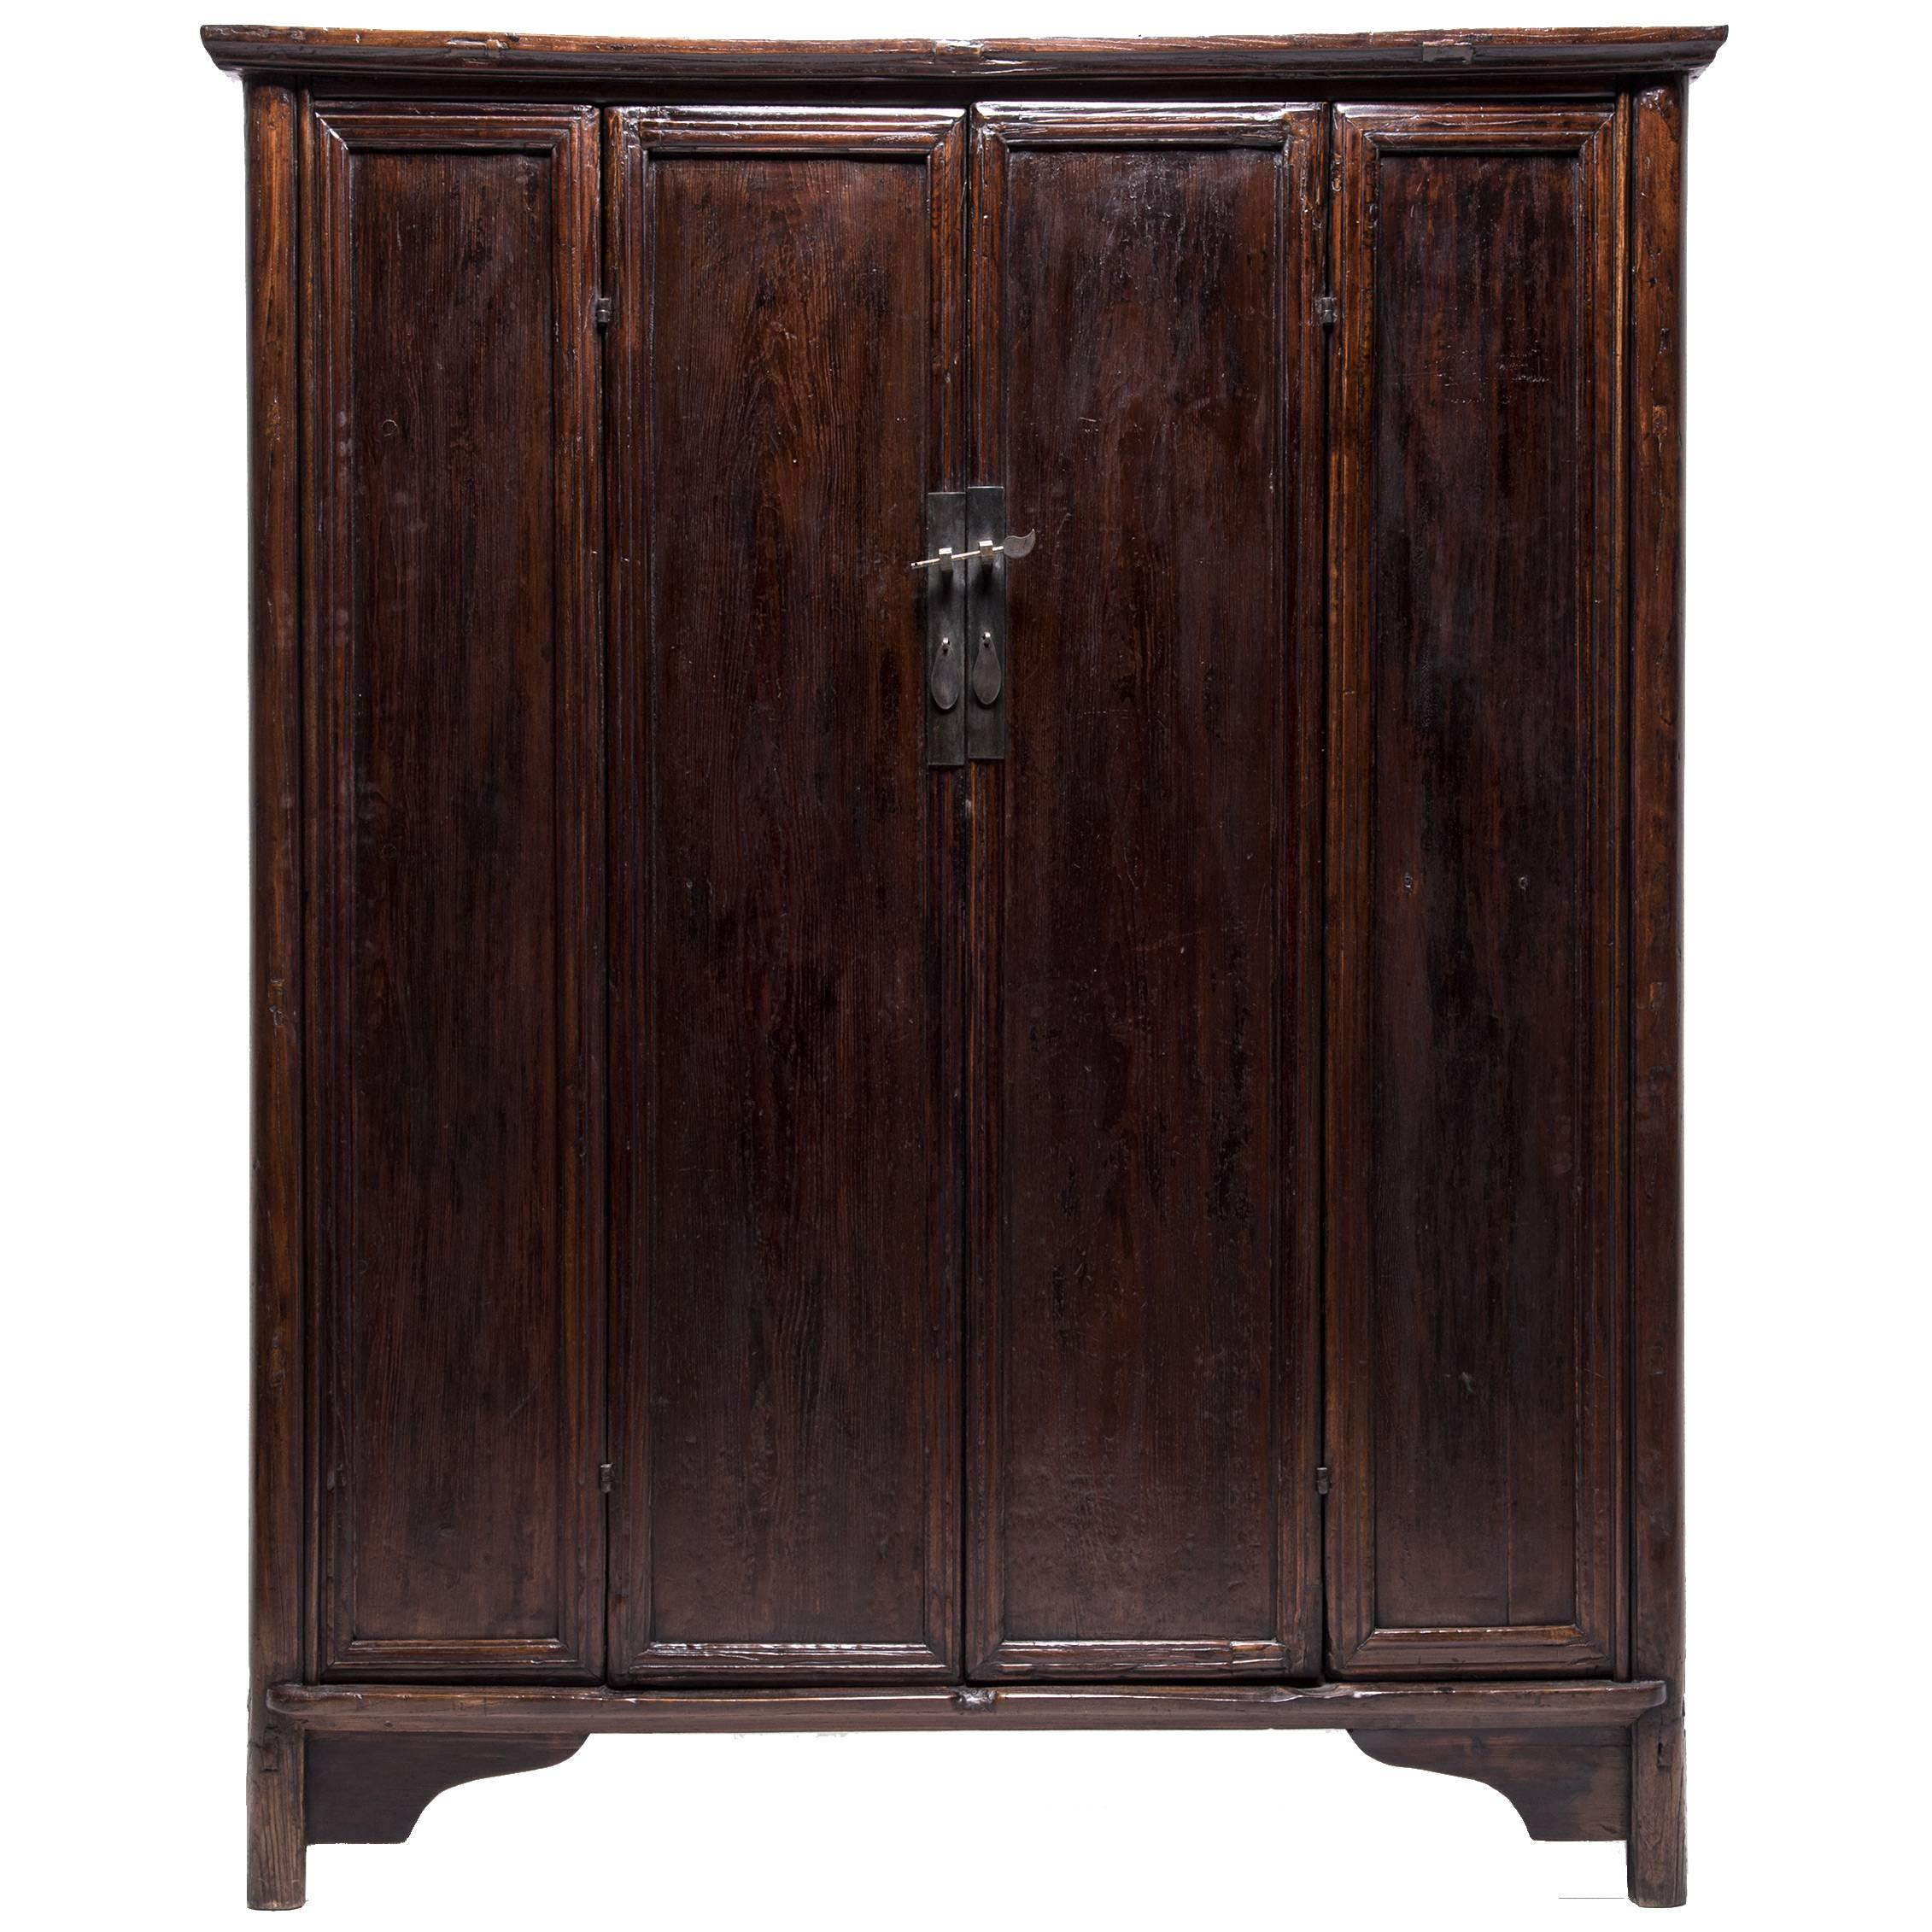 Chinese Four-Panel Cabinet, c. 1850